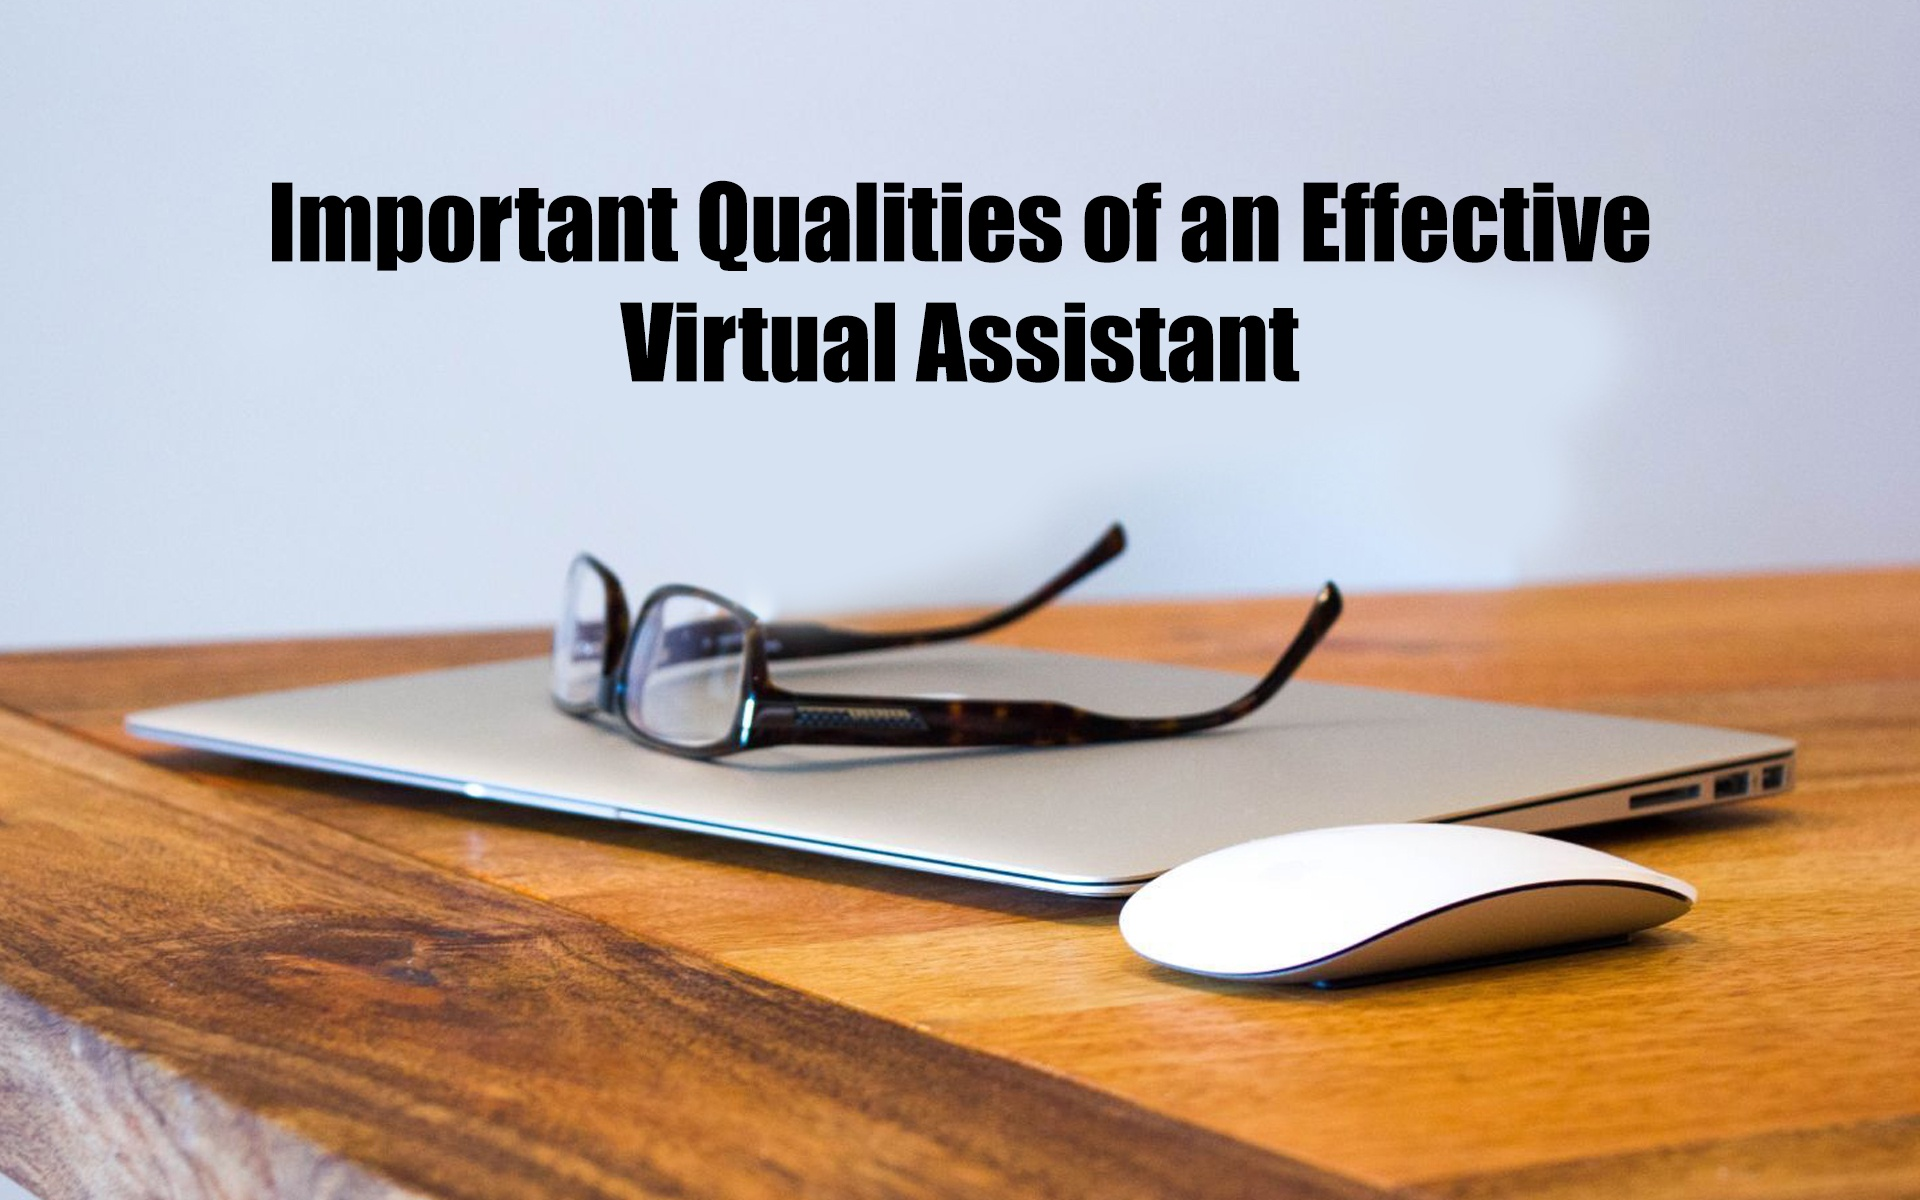 Important Qualities of an Effective Virtual Assistant